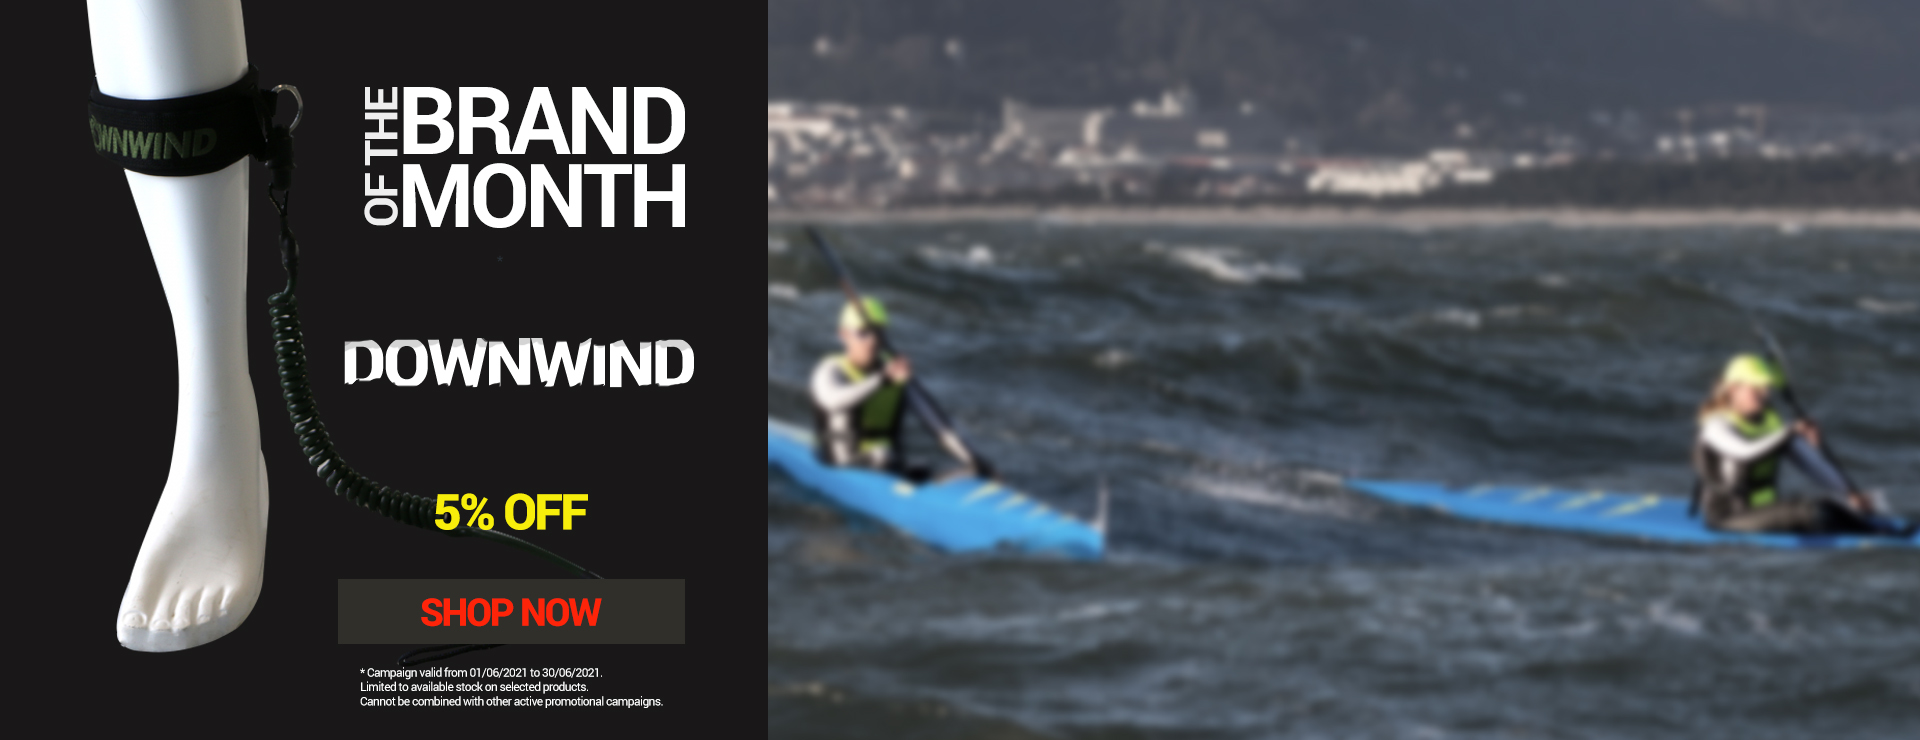 Brand of the month Downwind